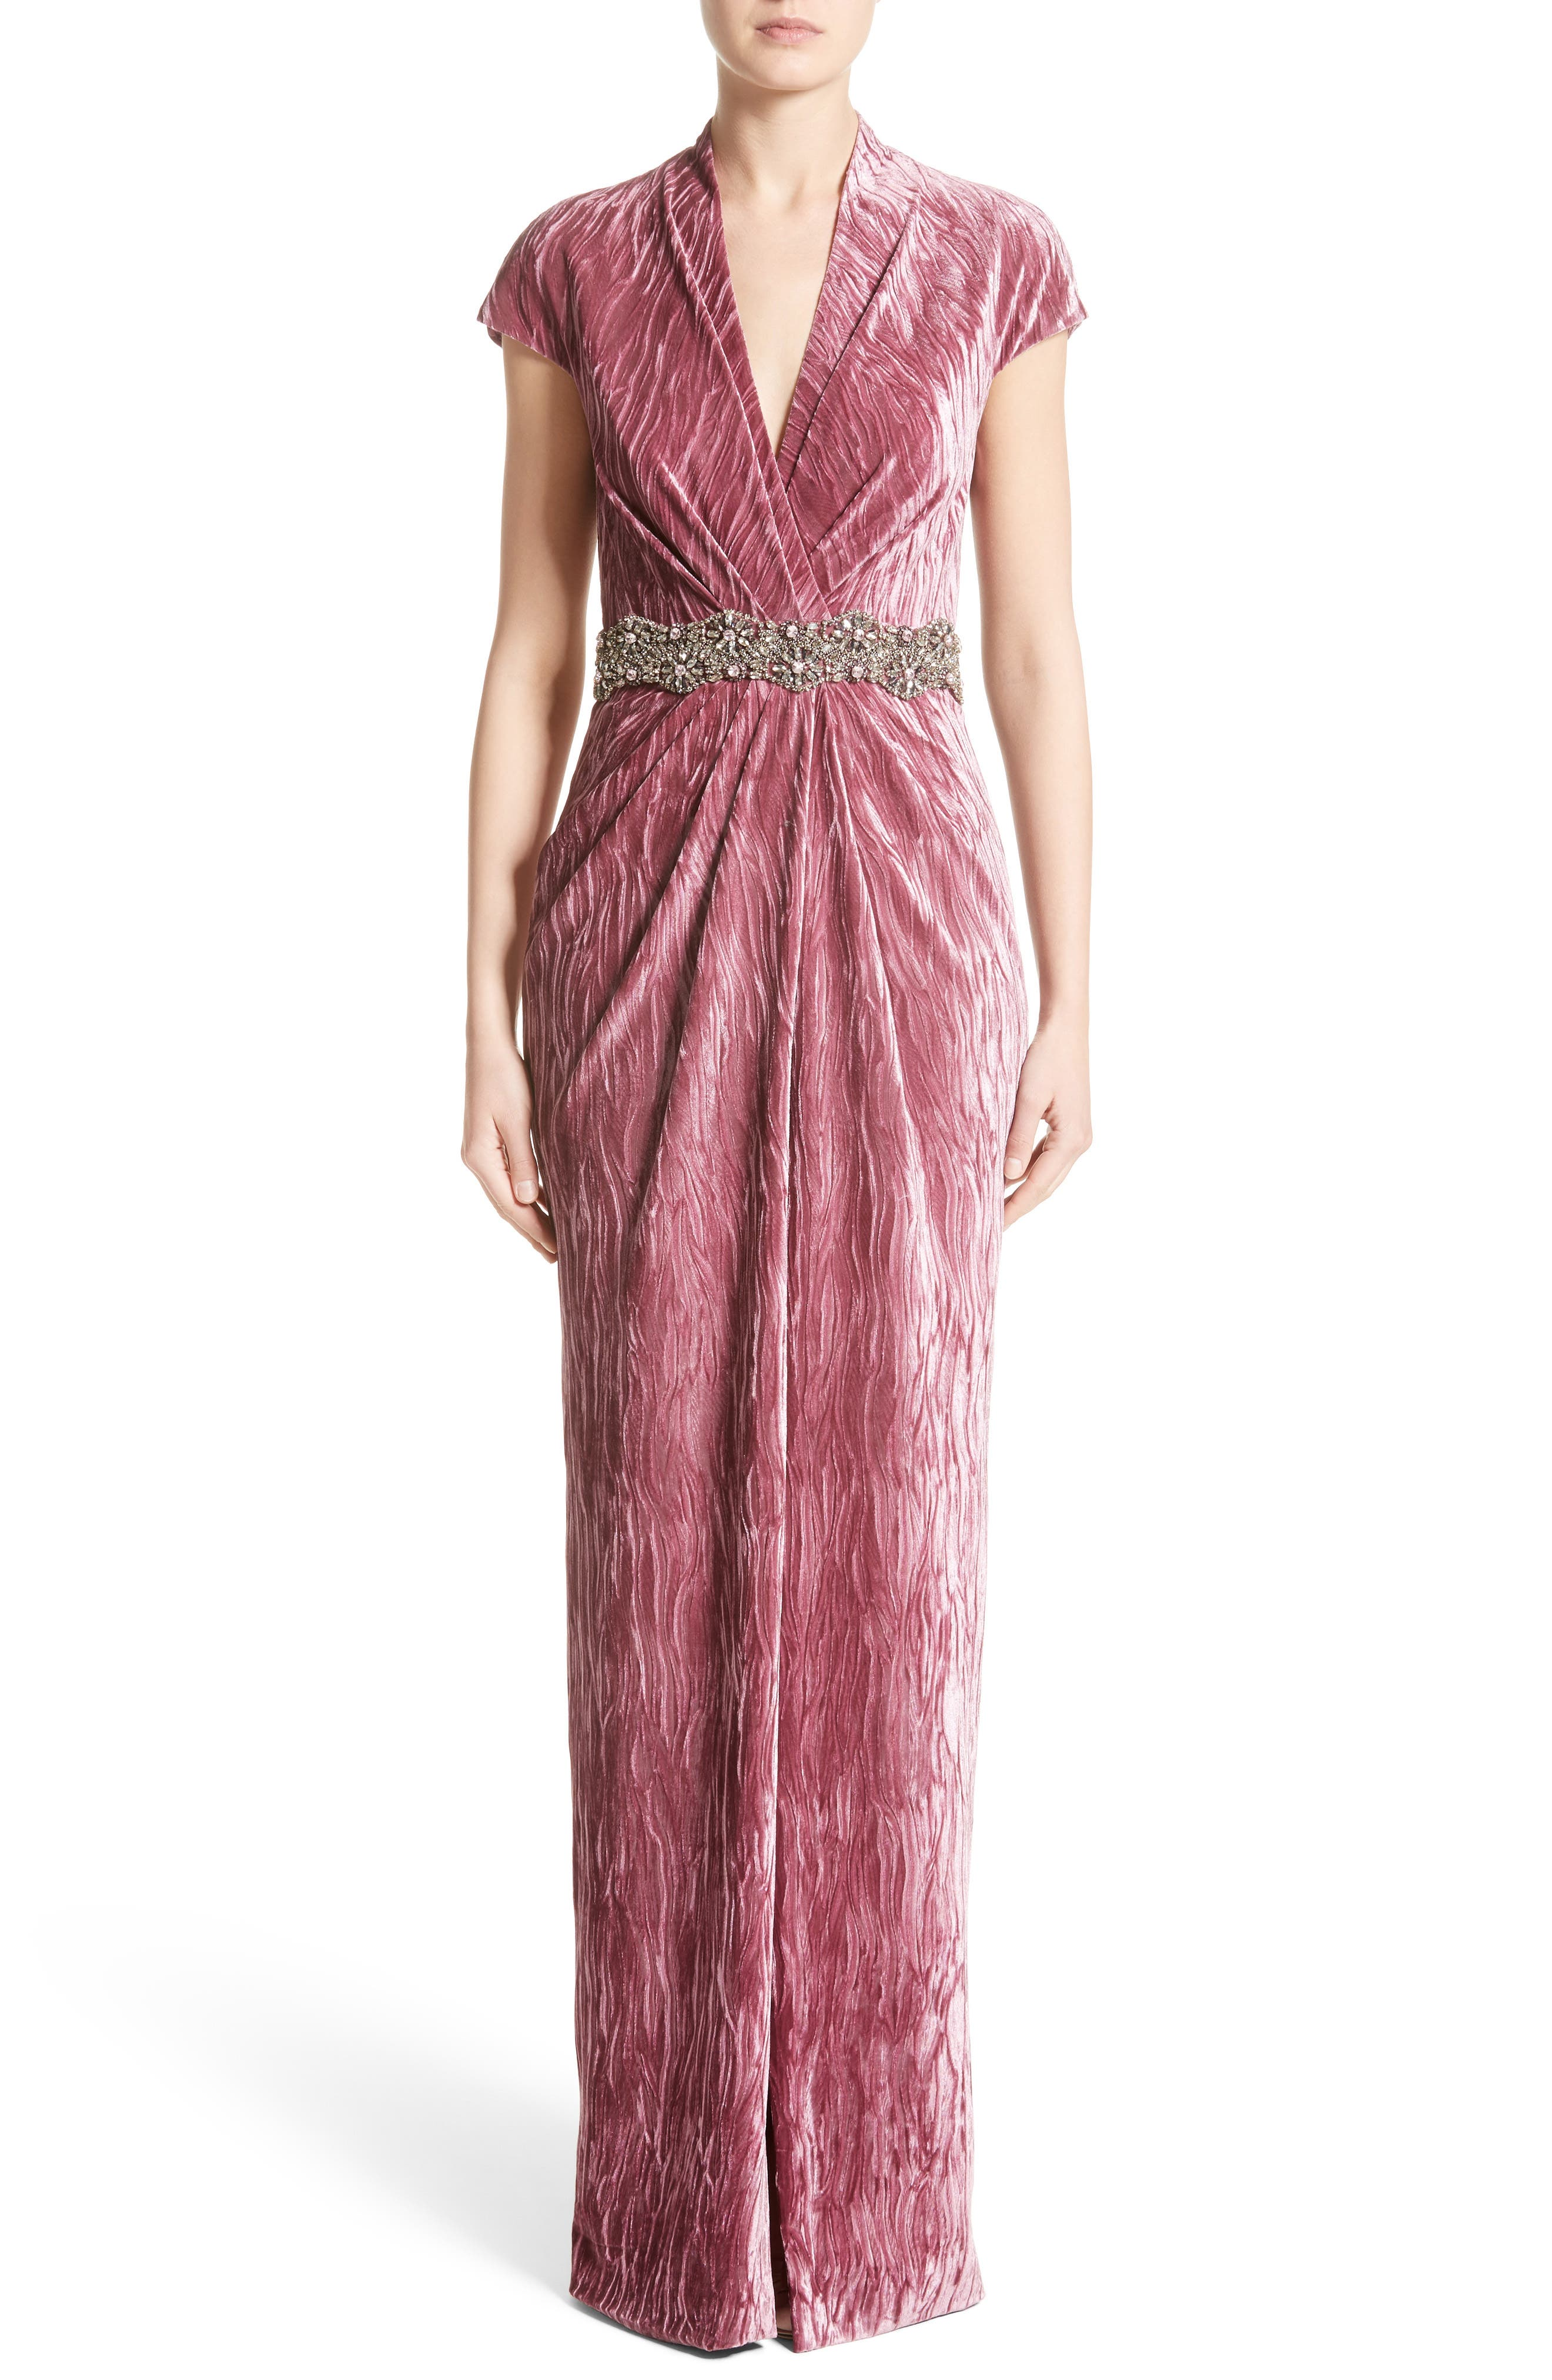 Alternate Image 1 Selected - Badgley Mischka Couture Beaded Belt Faux Wrap Gown (Nordstrom Exclusive)